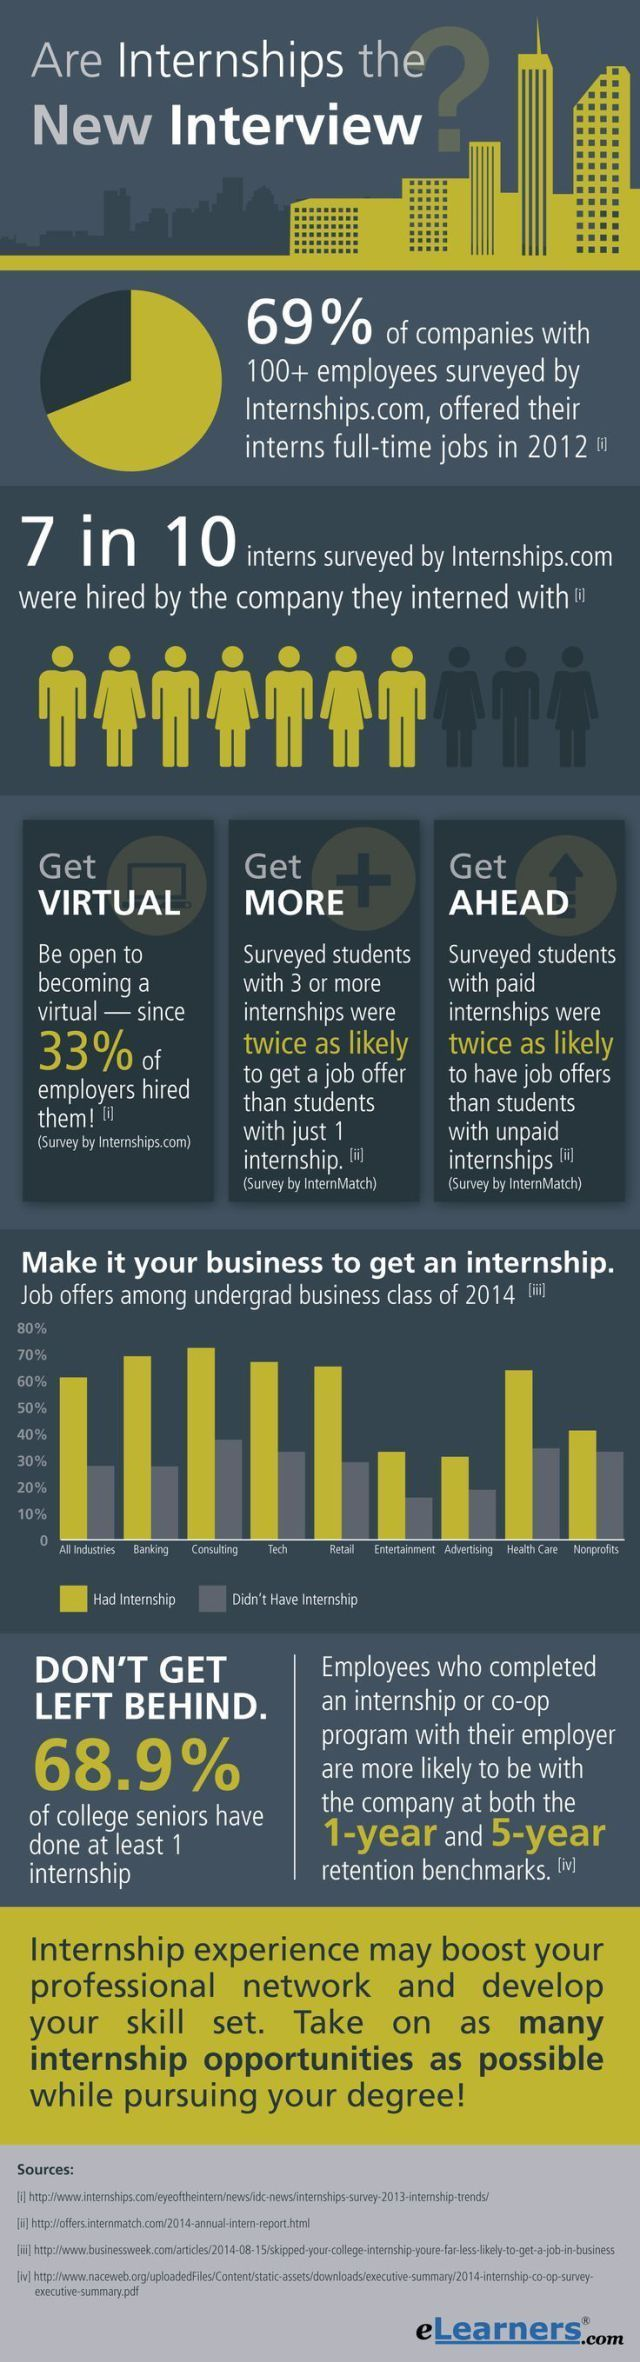 monster resignation letter%0A infographic   Are internships the new interview